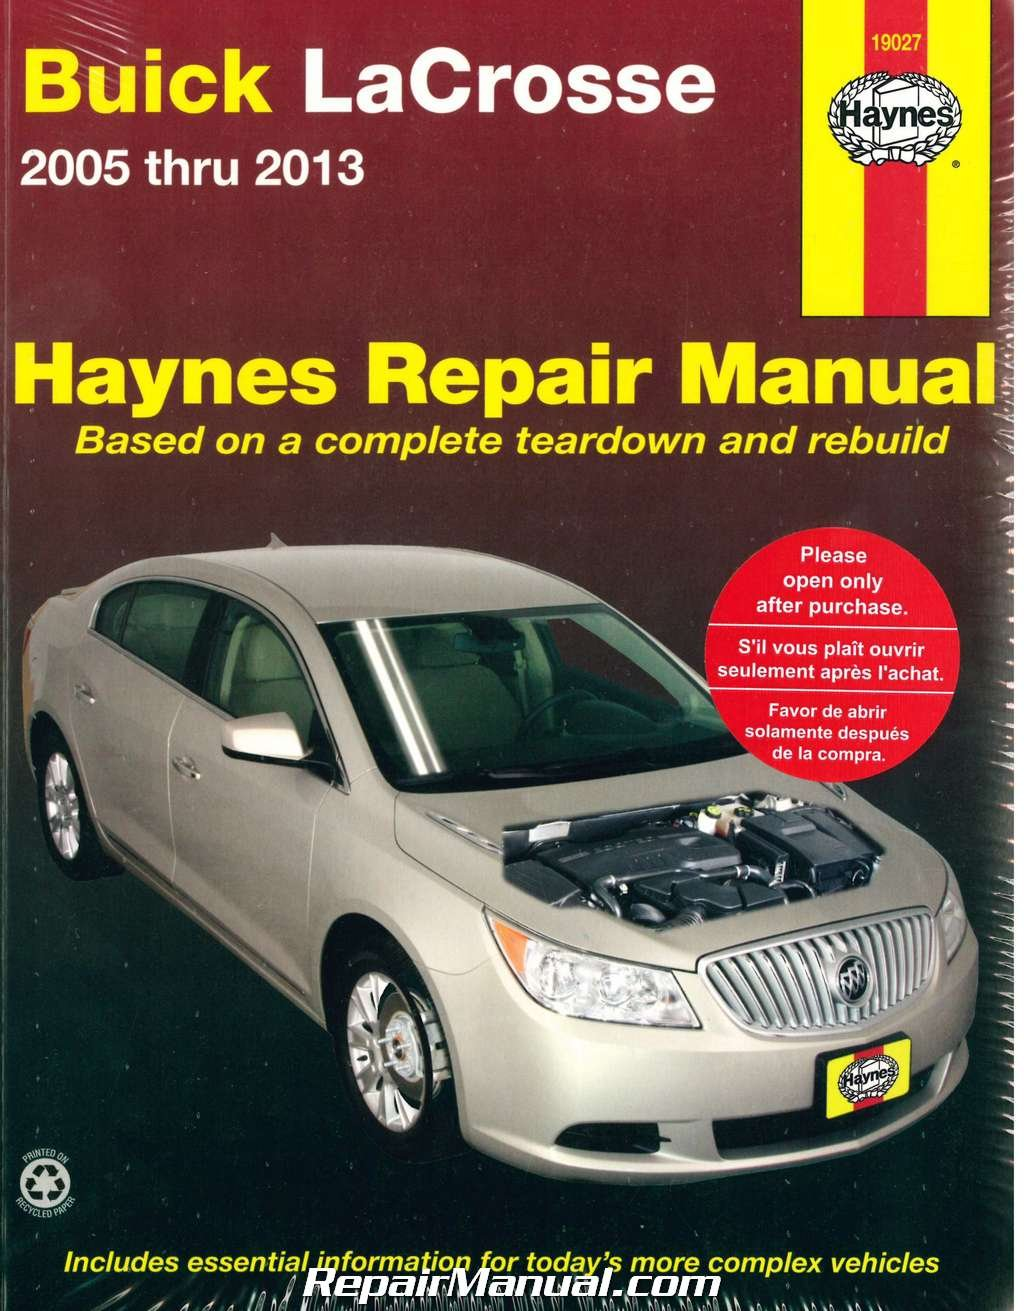 H19027 Buick LaCrosse 2005 - 2013 Haynes Repair Manual: Manufacturer:  Amazon.com: Books